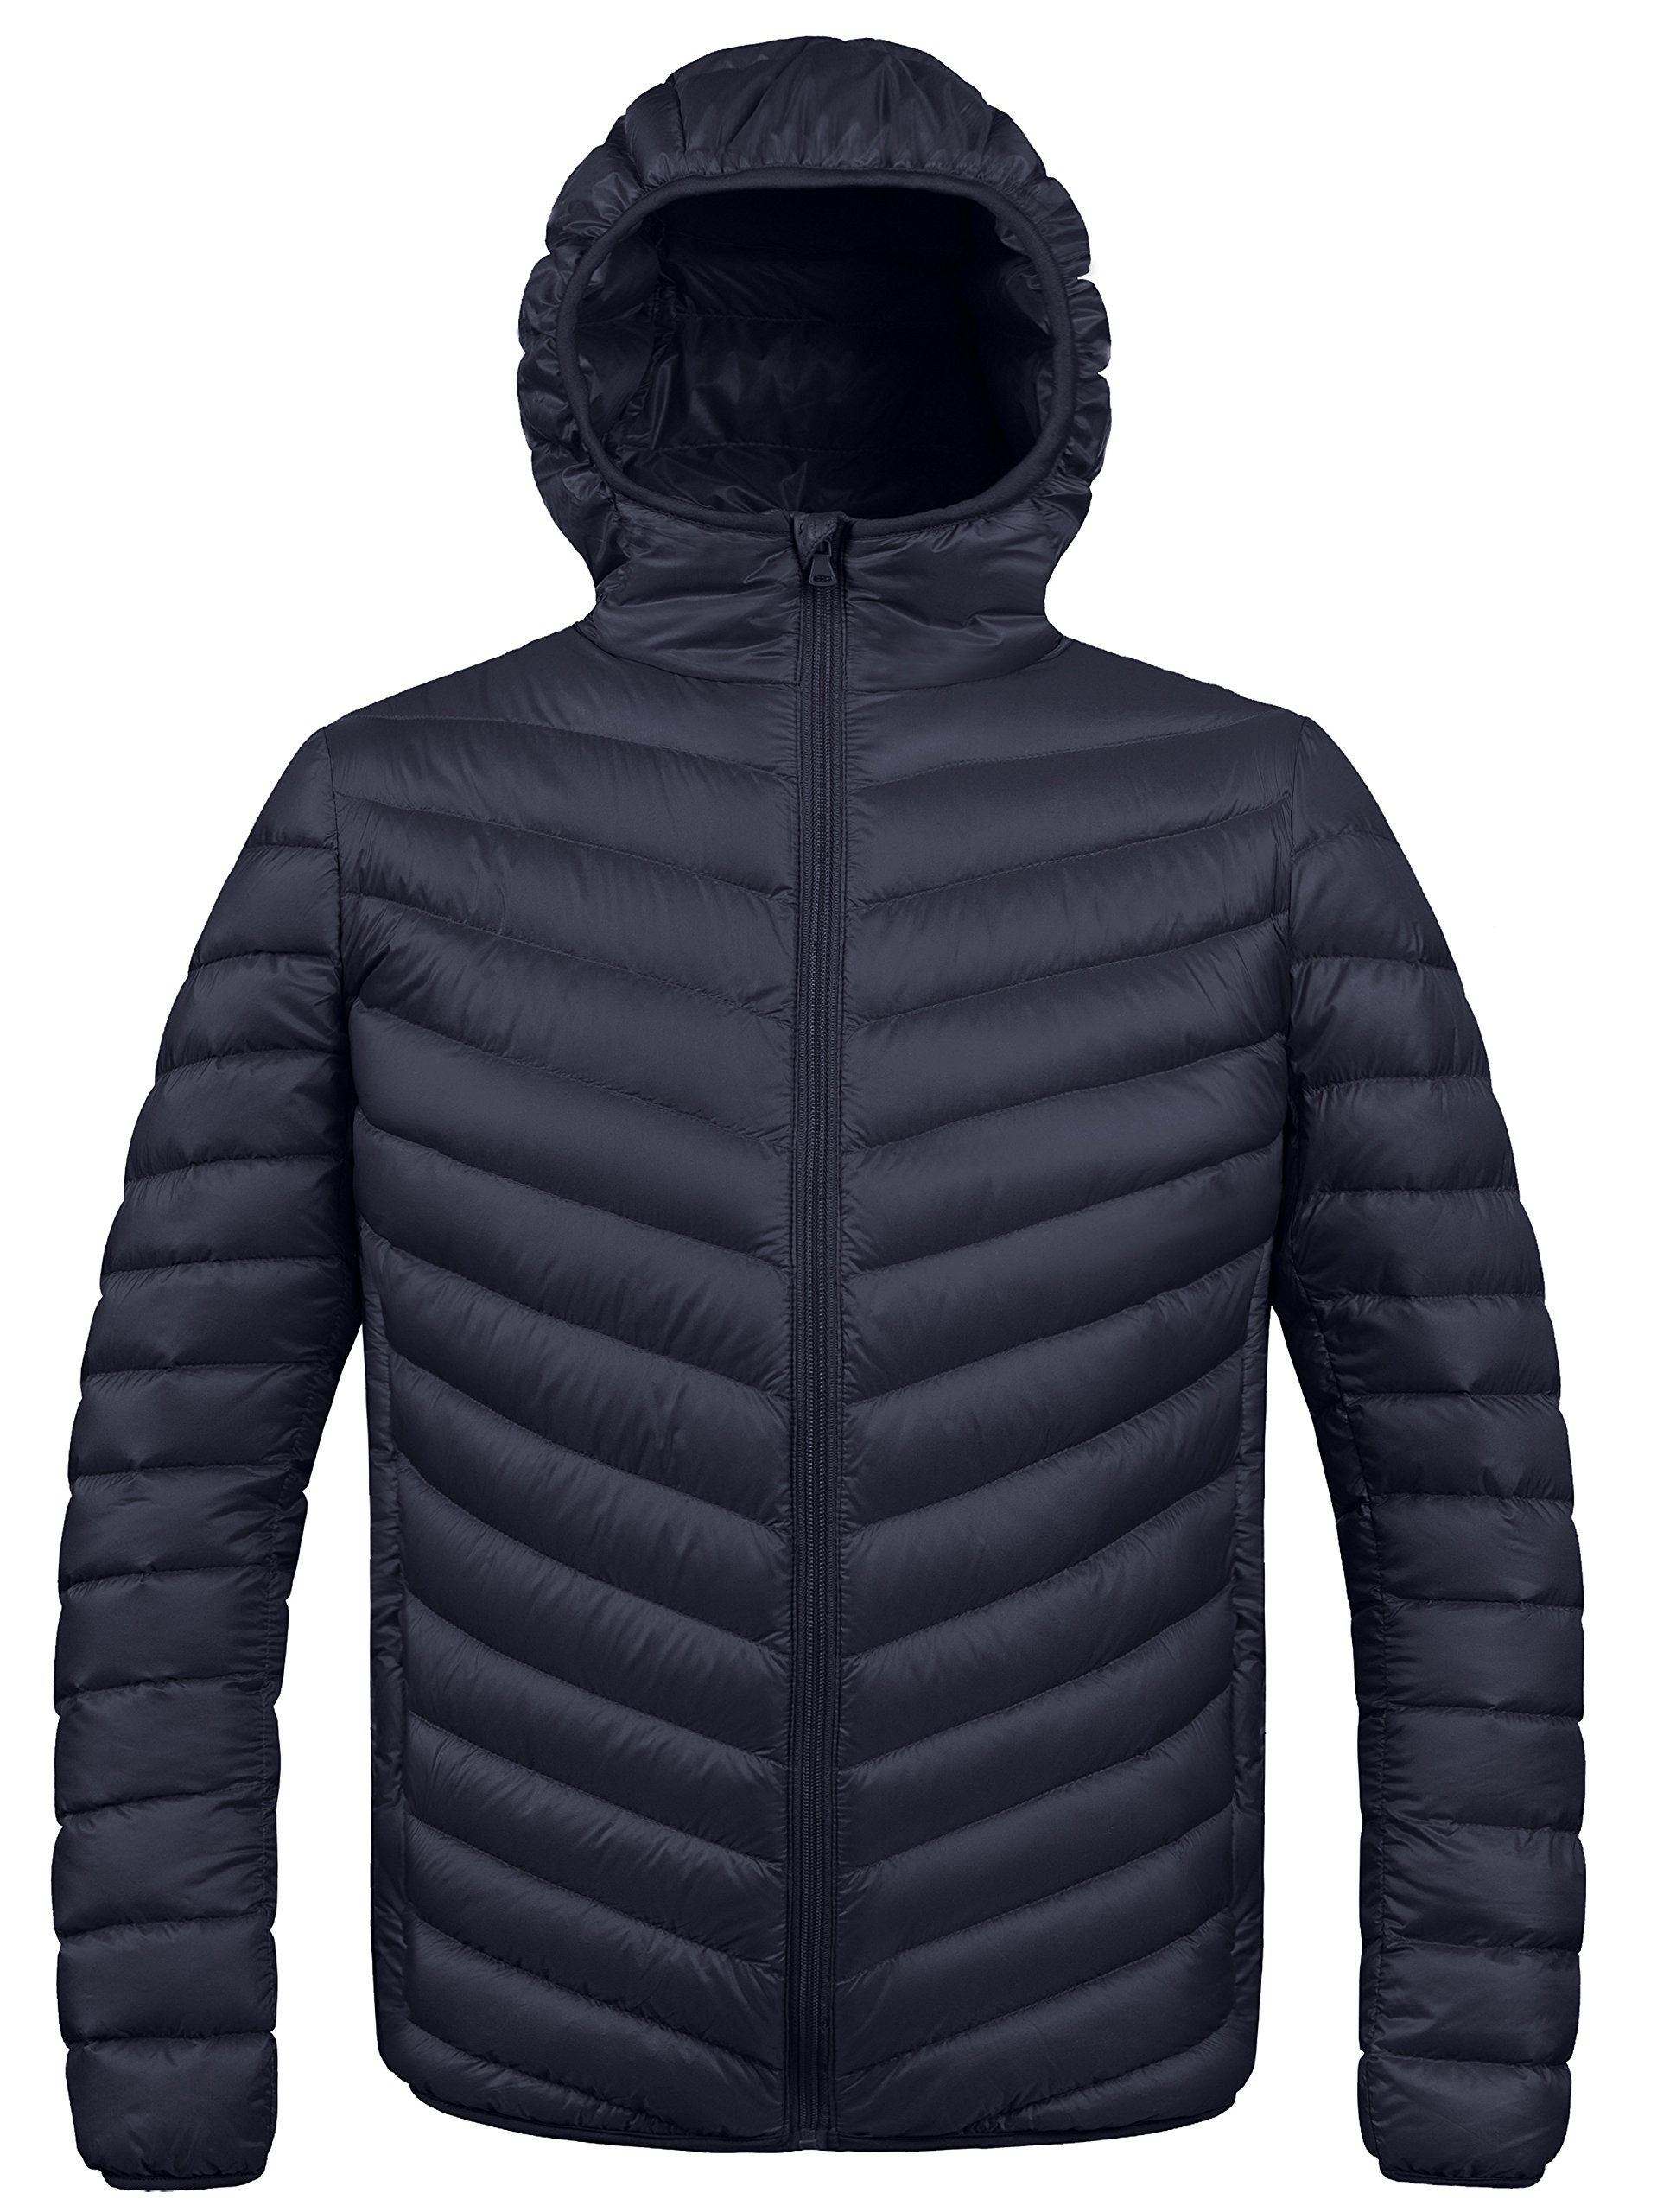 ZSHOW Men's Winter Hooded Packable Down Jacket(Black,Medium)